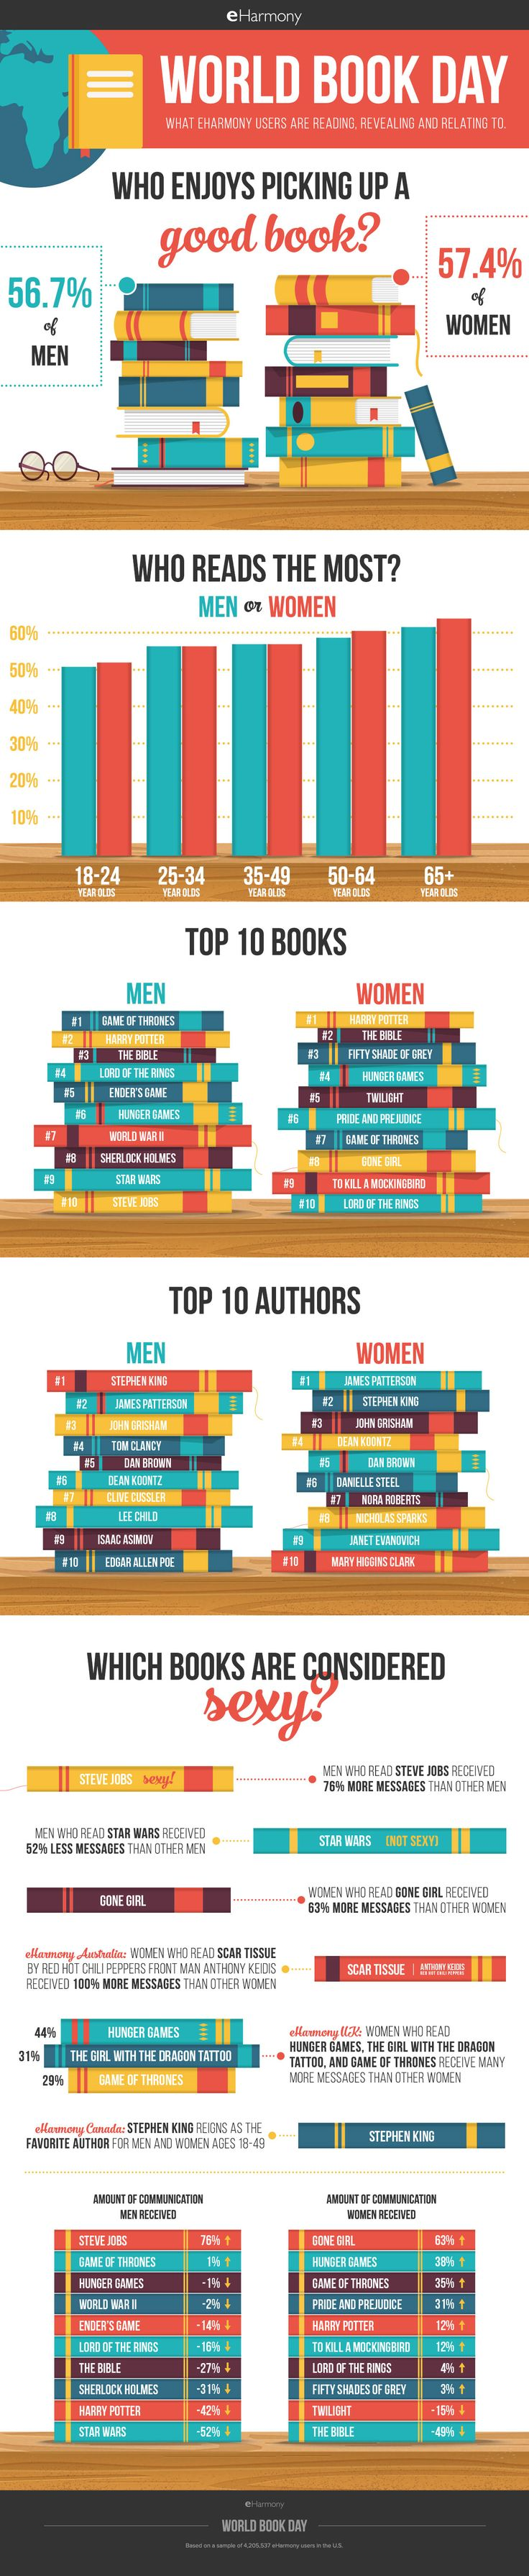 us-infographic-world-book-day-sm